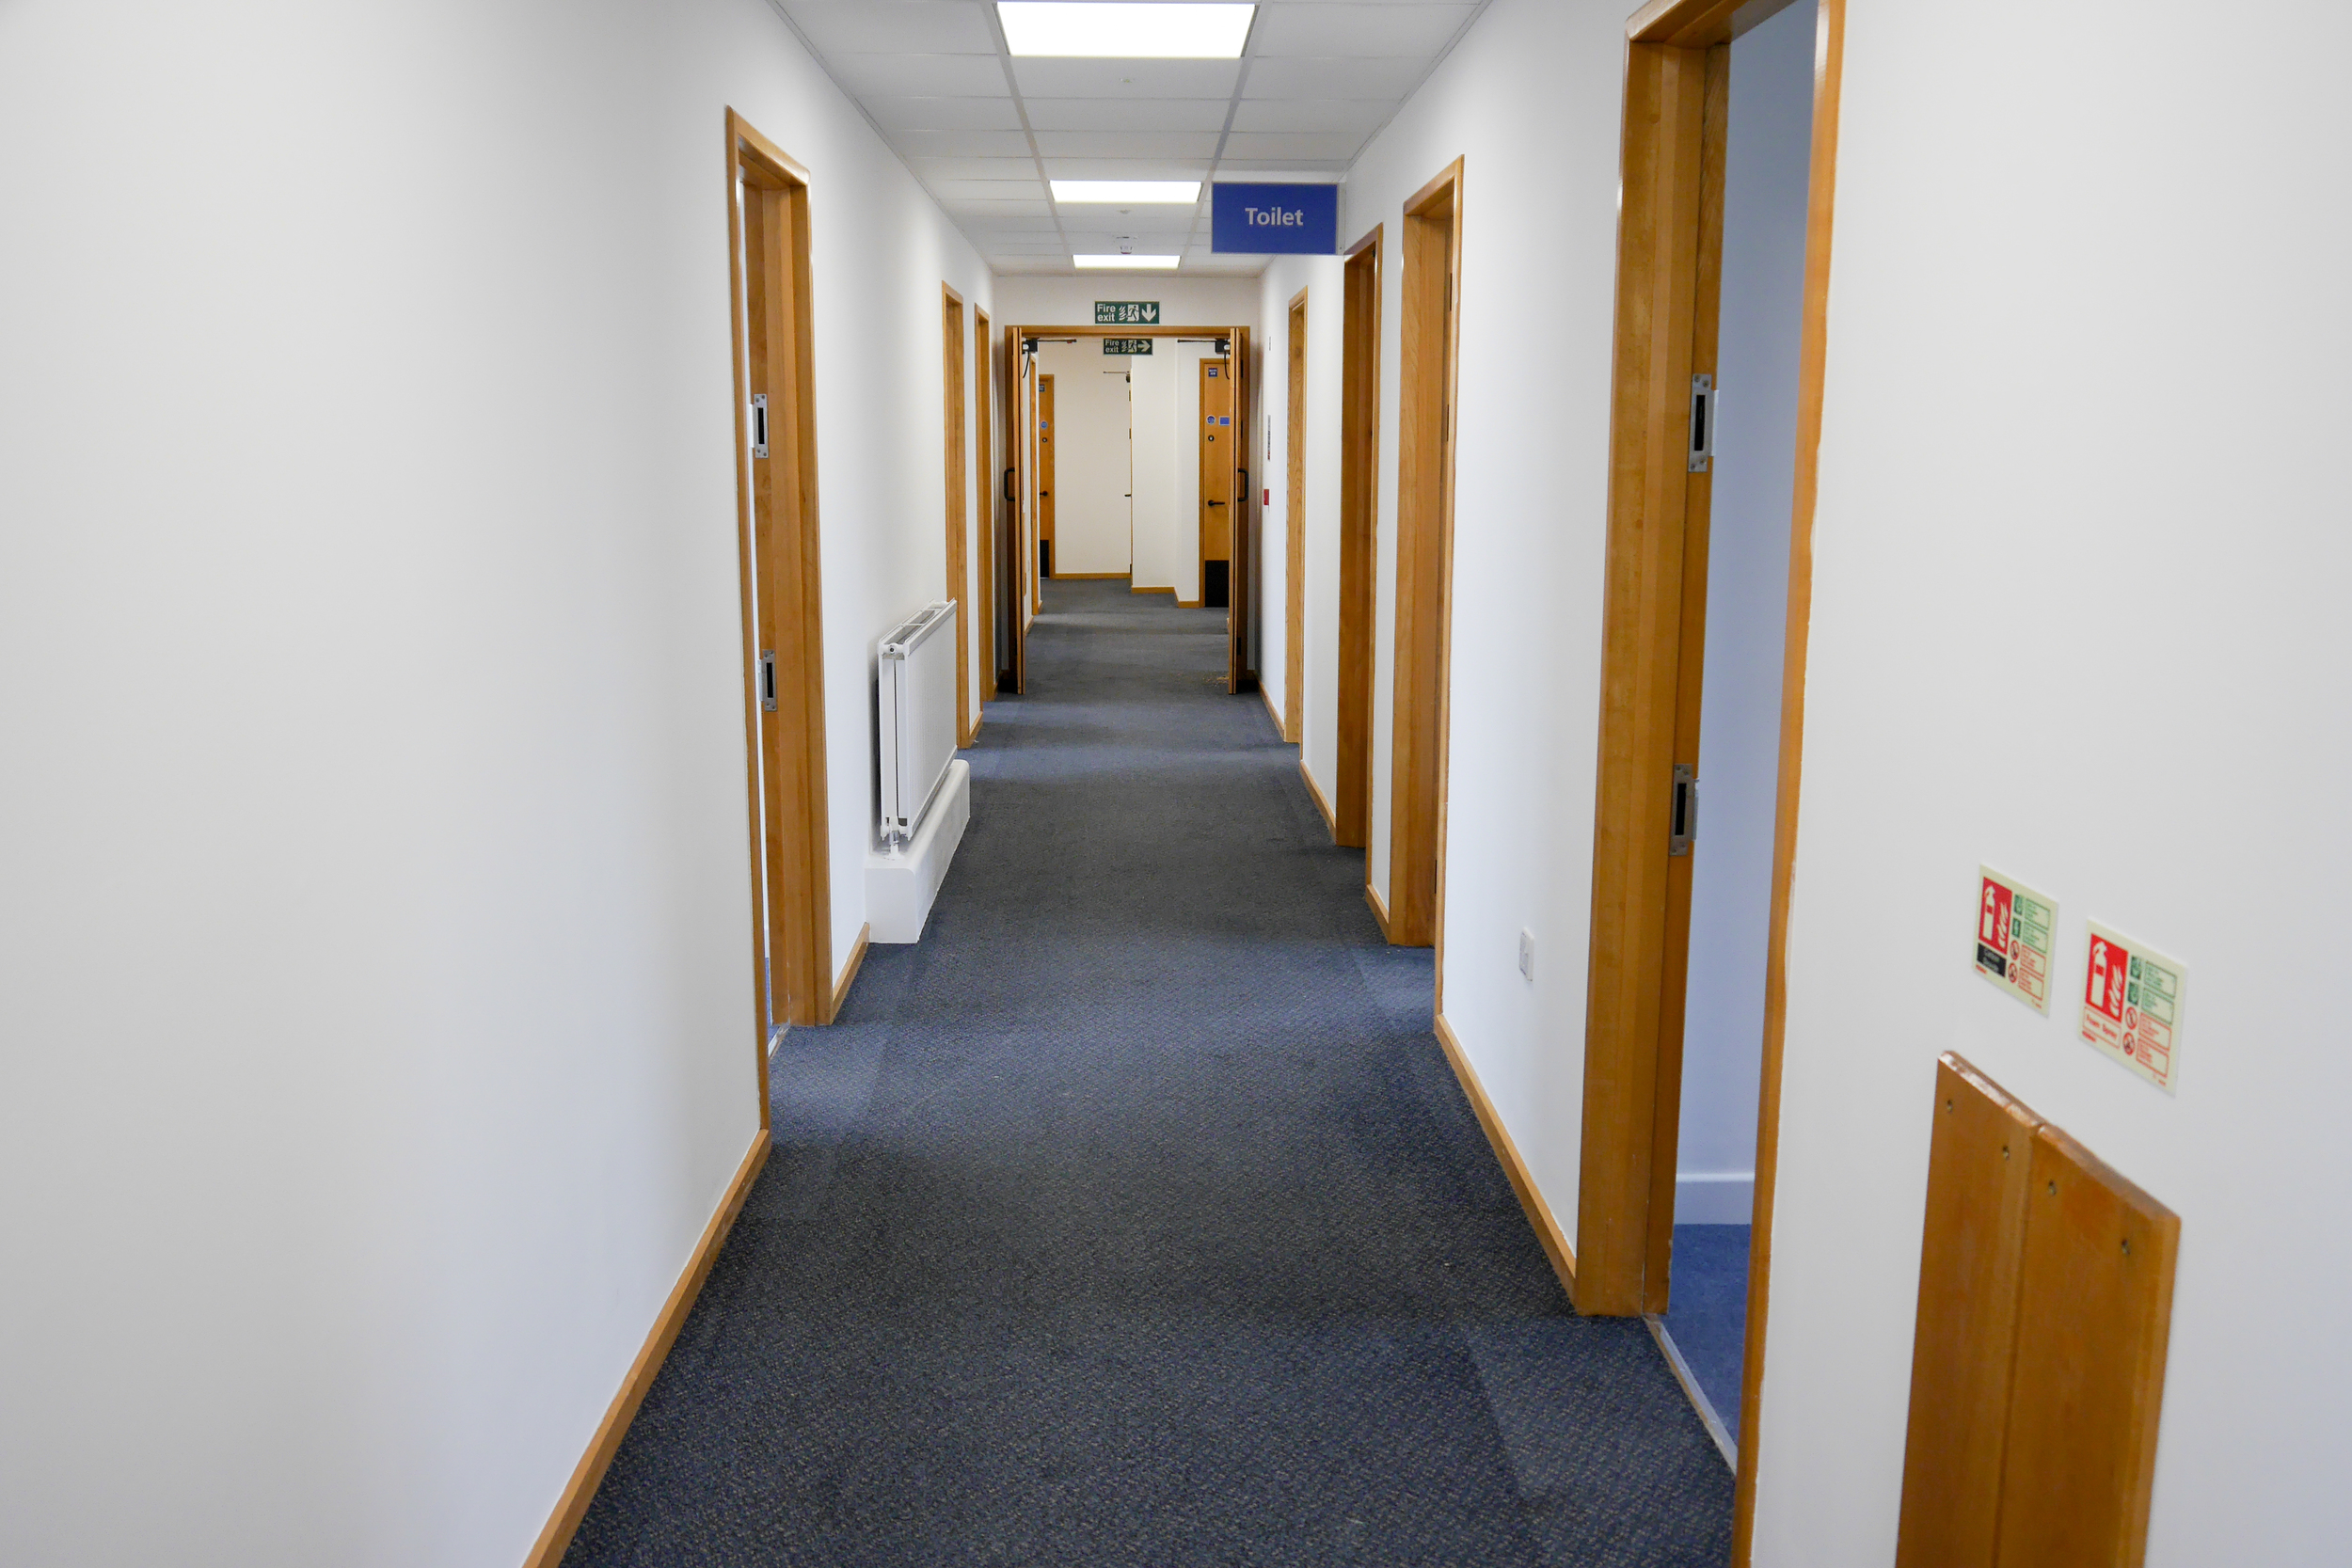 Corridors and communal areas